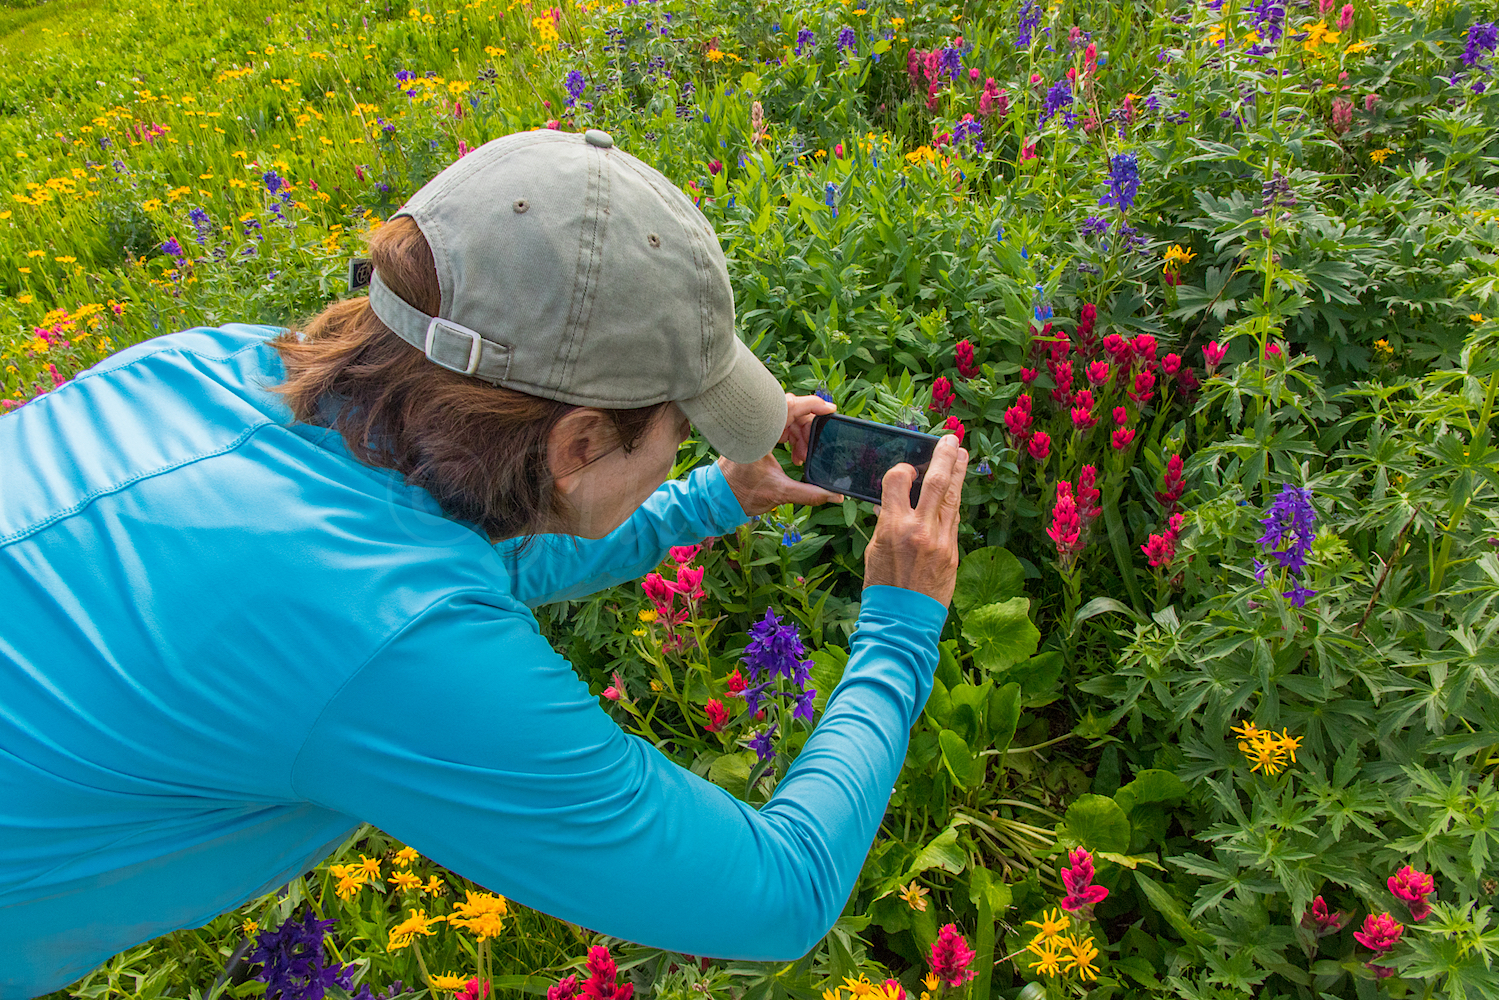 Angela gets the shot at Maggie Gulch, Image #JS_5592